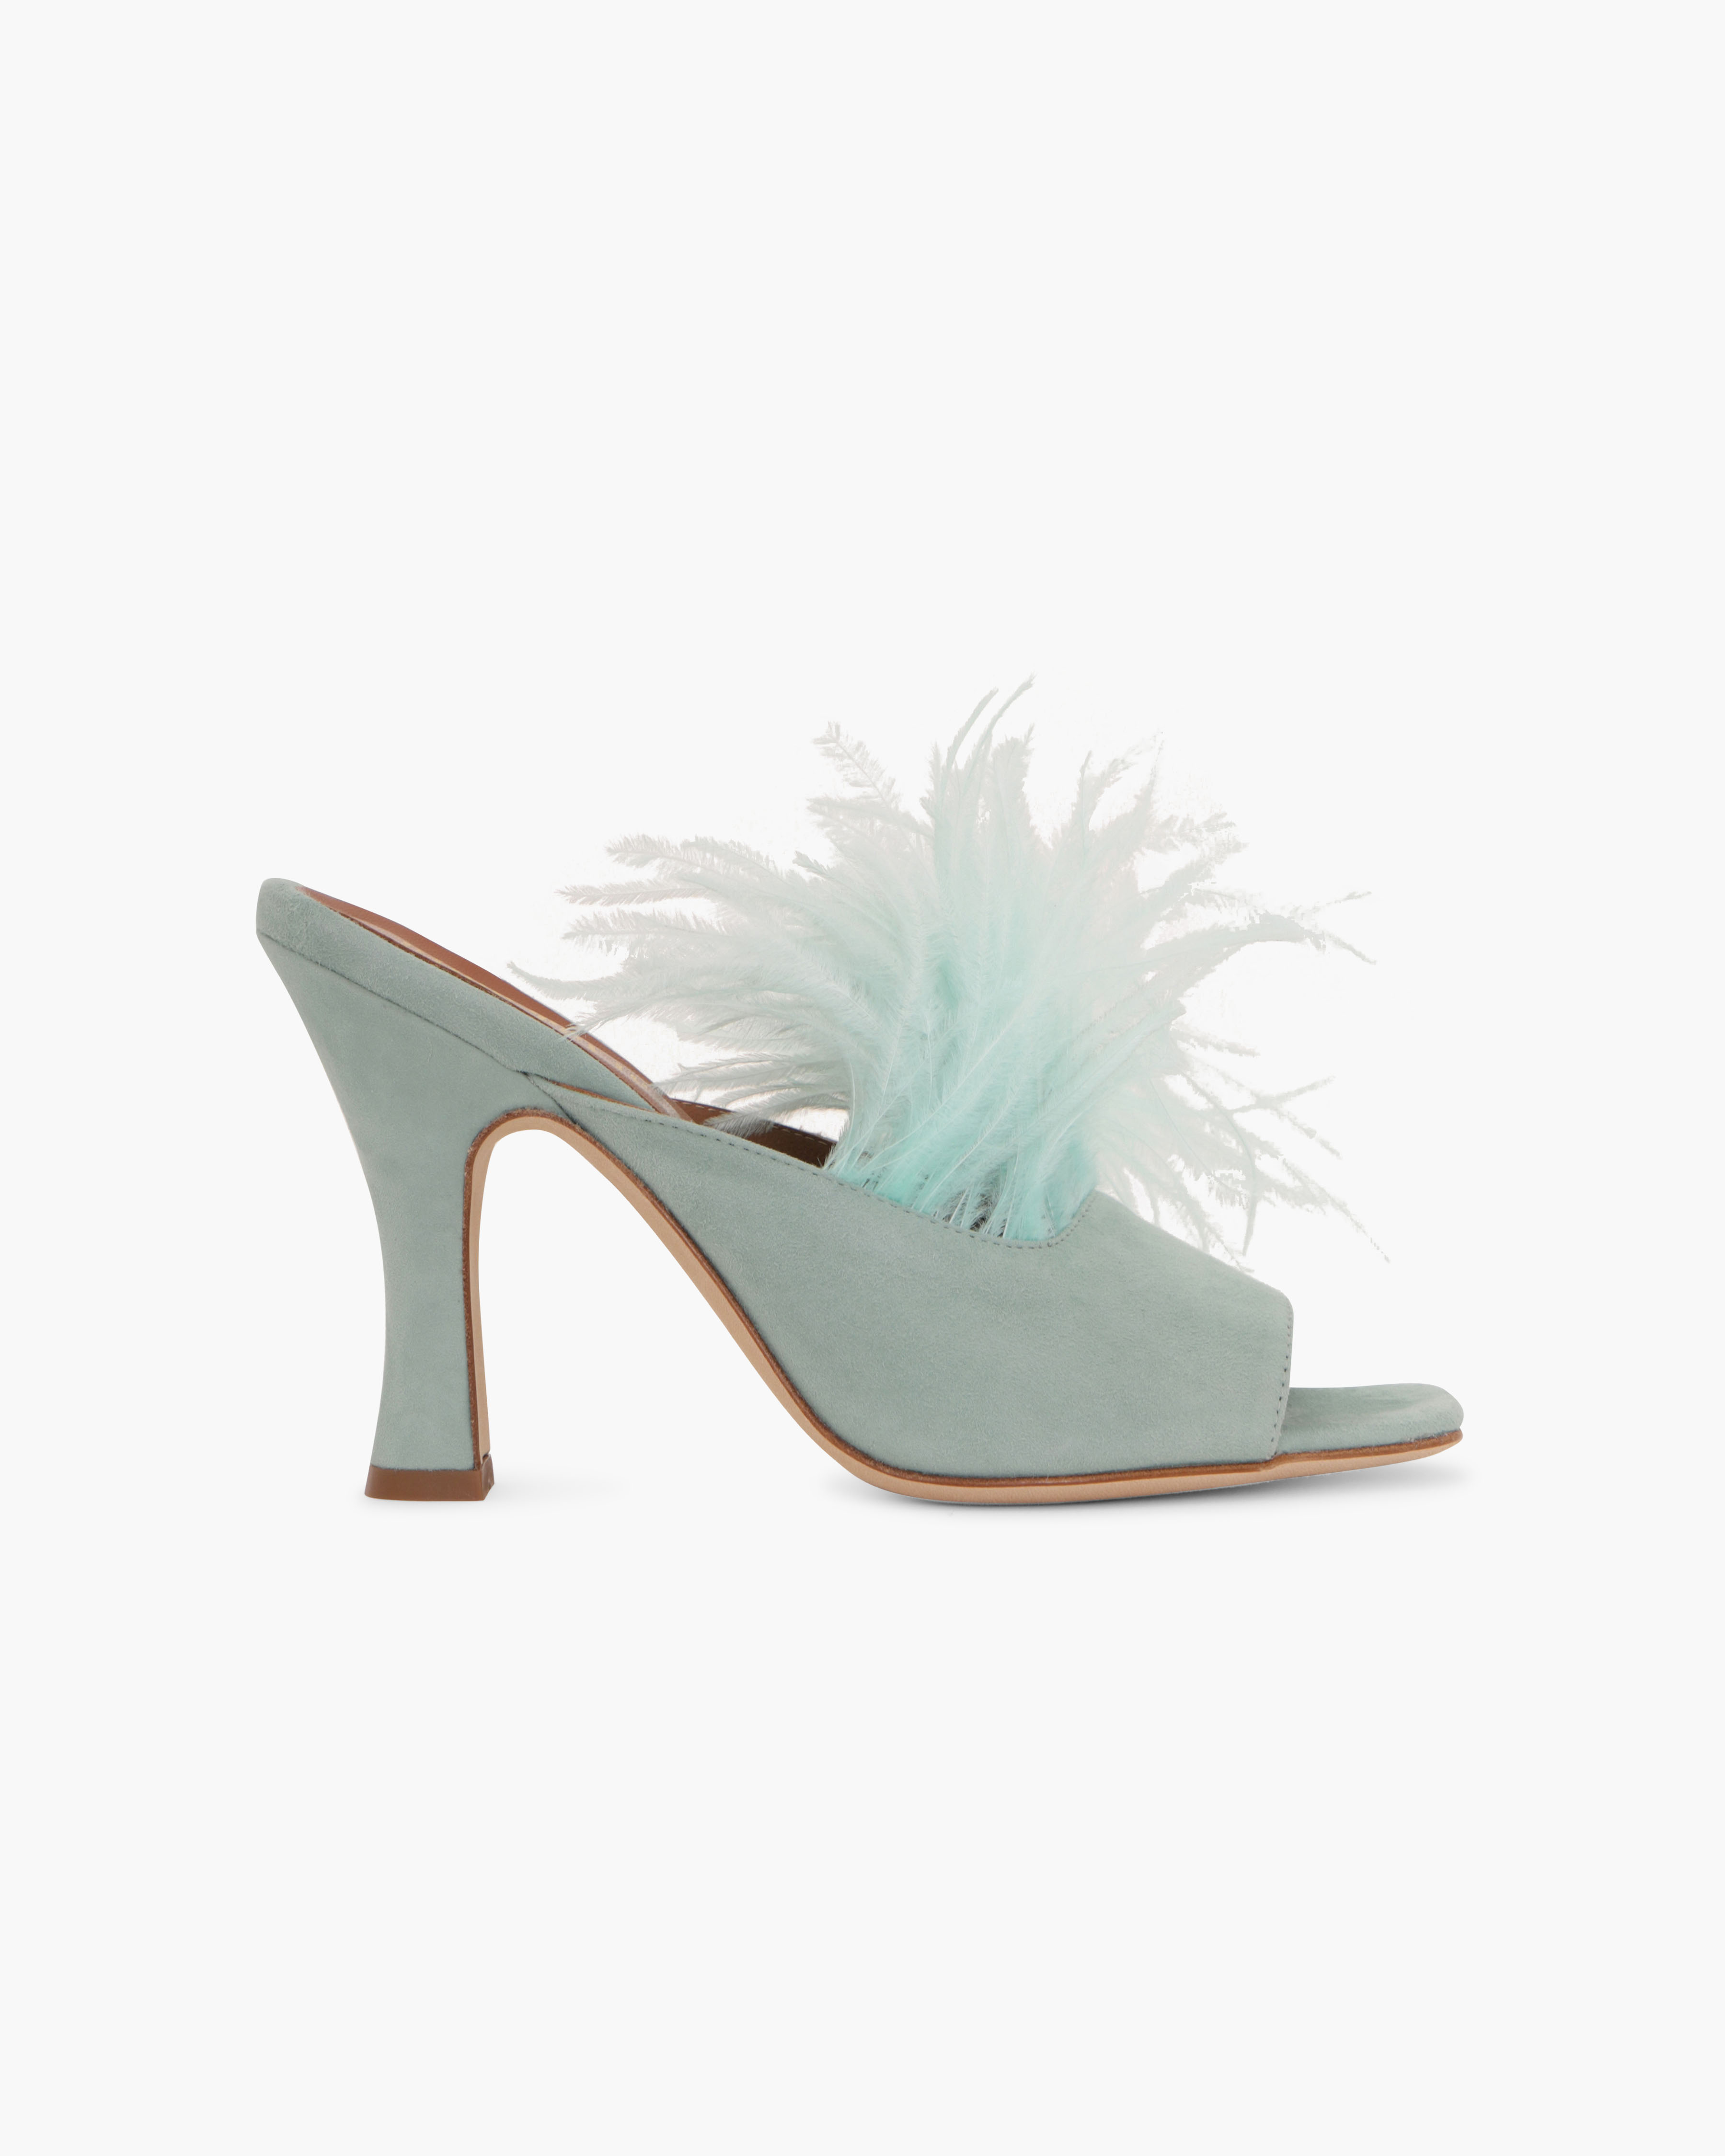 MULES WITH MARABOU FEATHERS